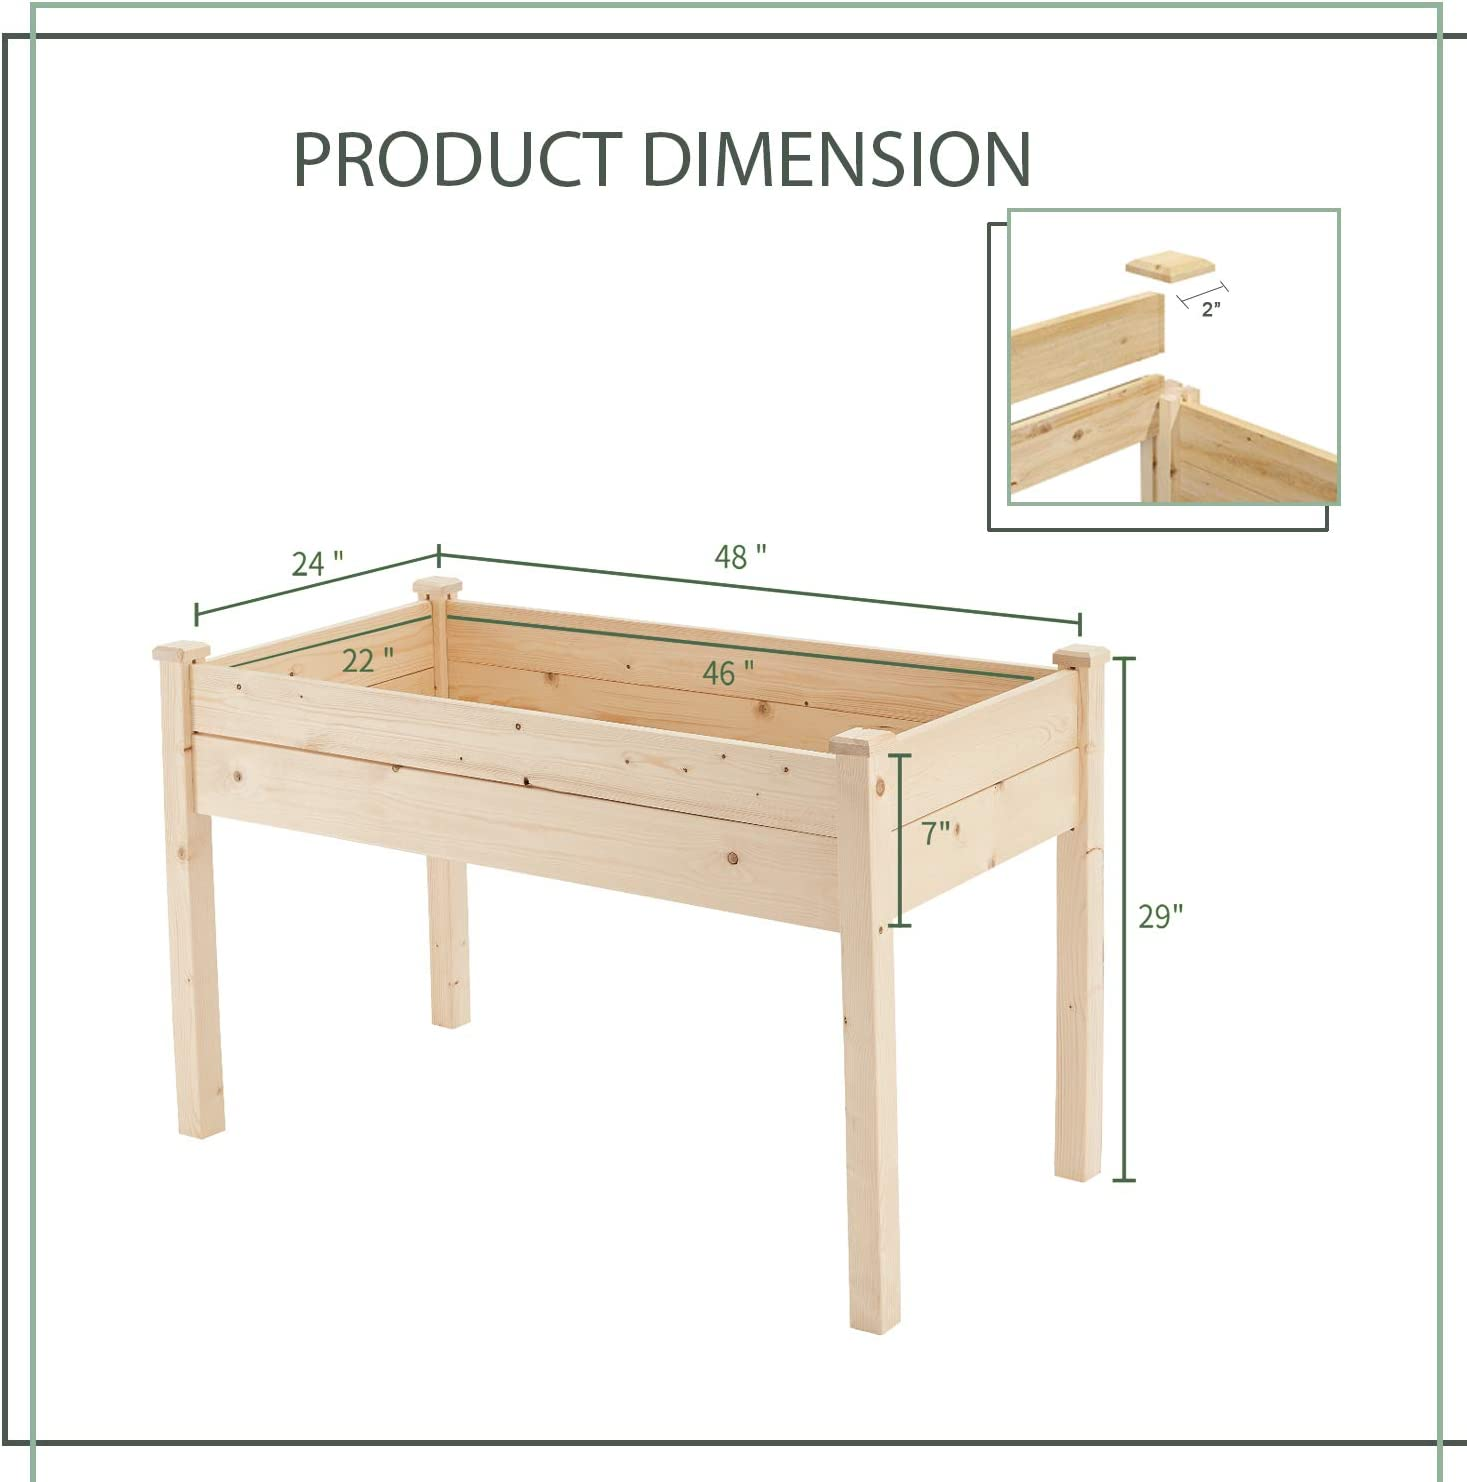 3 FT Rectangle Planter Box Kit for Balcony and Patio GOOGIC Raised ...